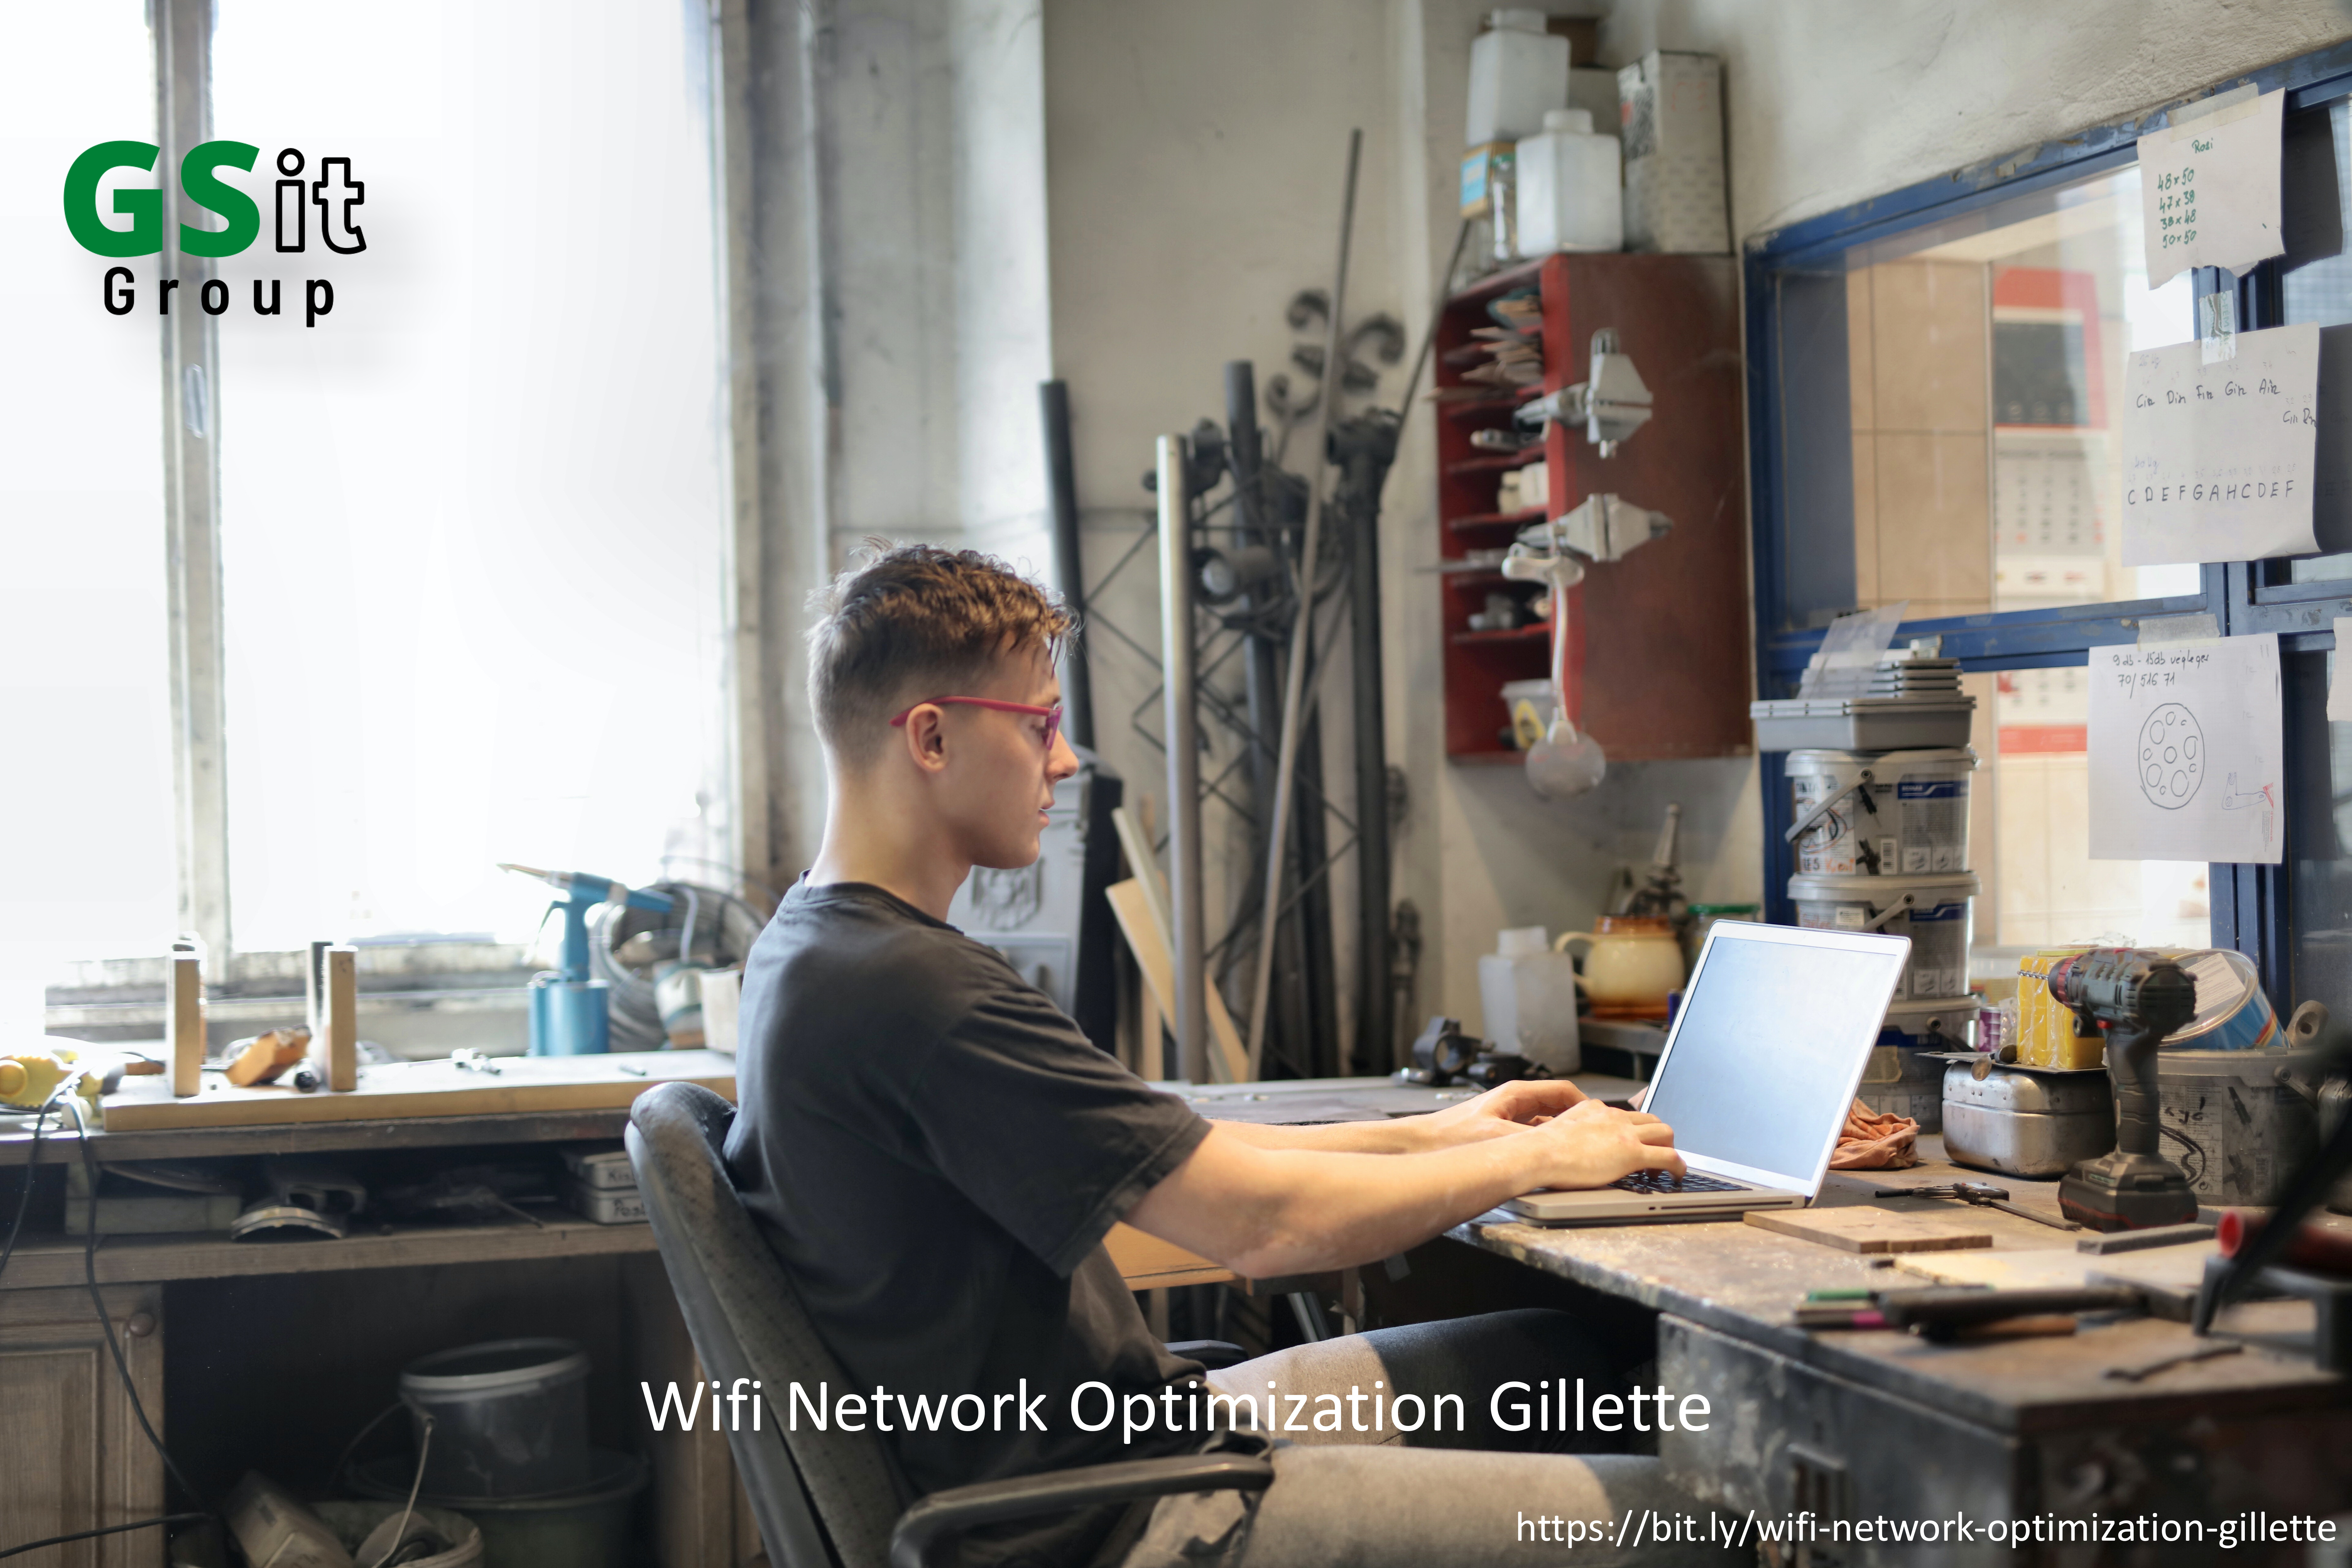 GSIT Group Introduces Wi-Fi Network Optimization in Gillette